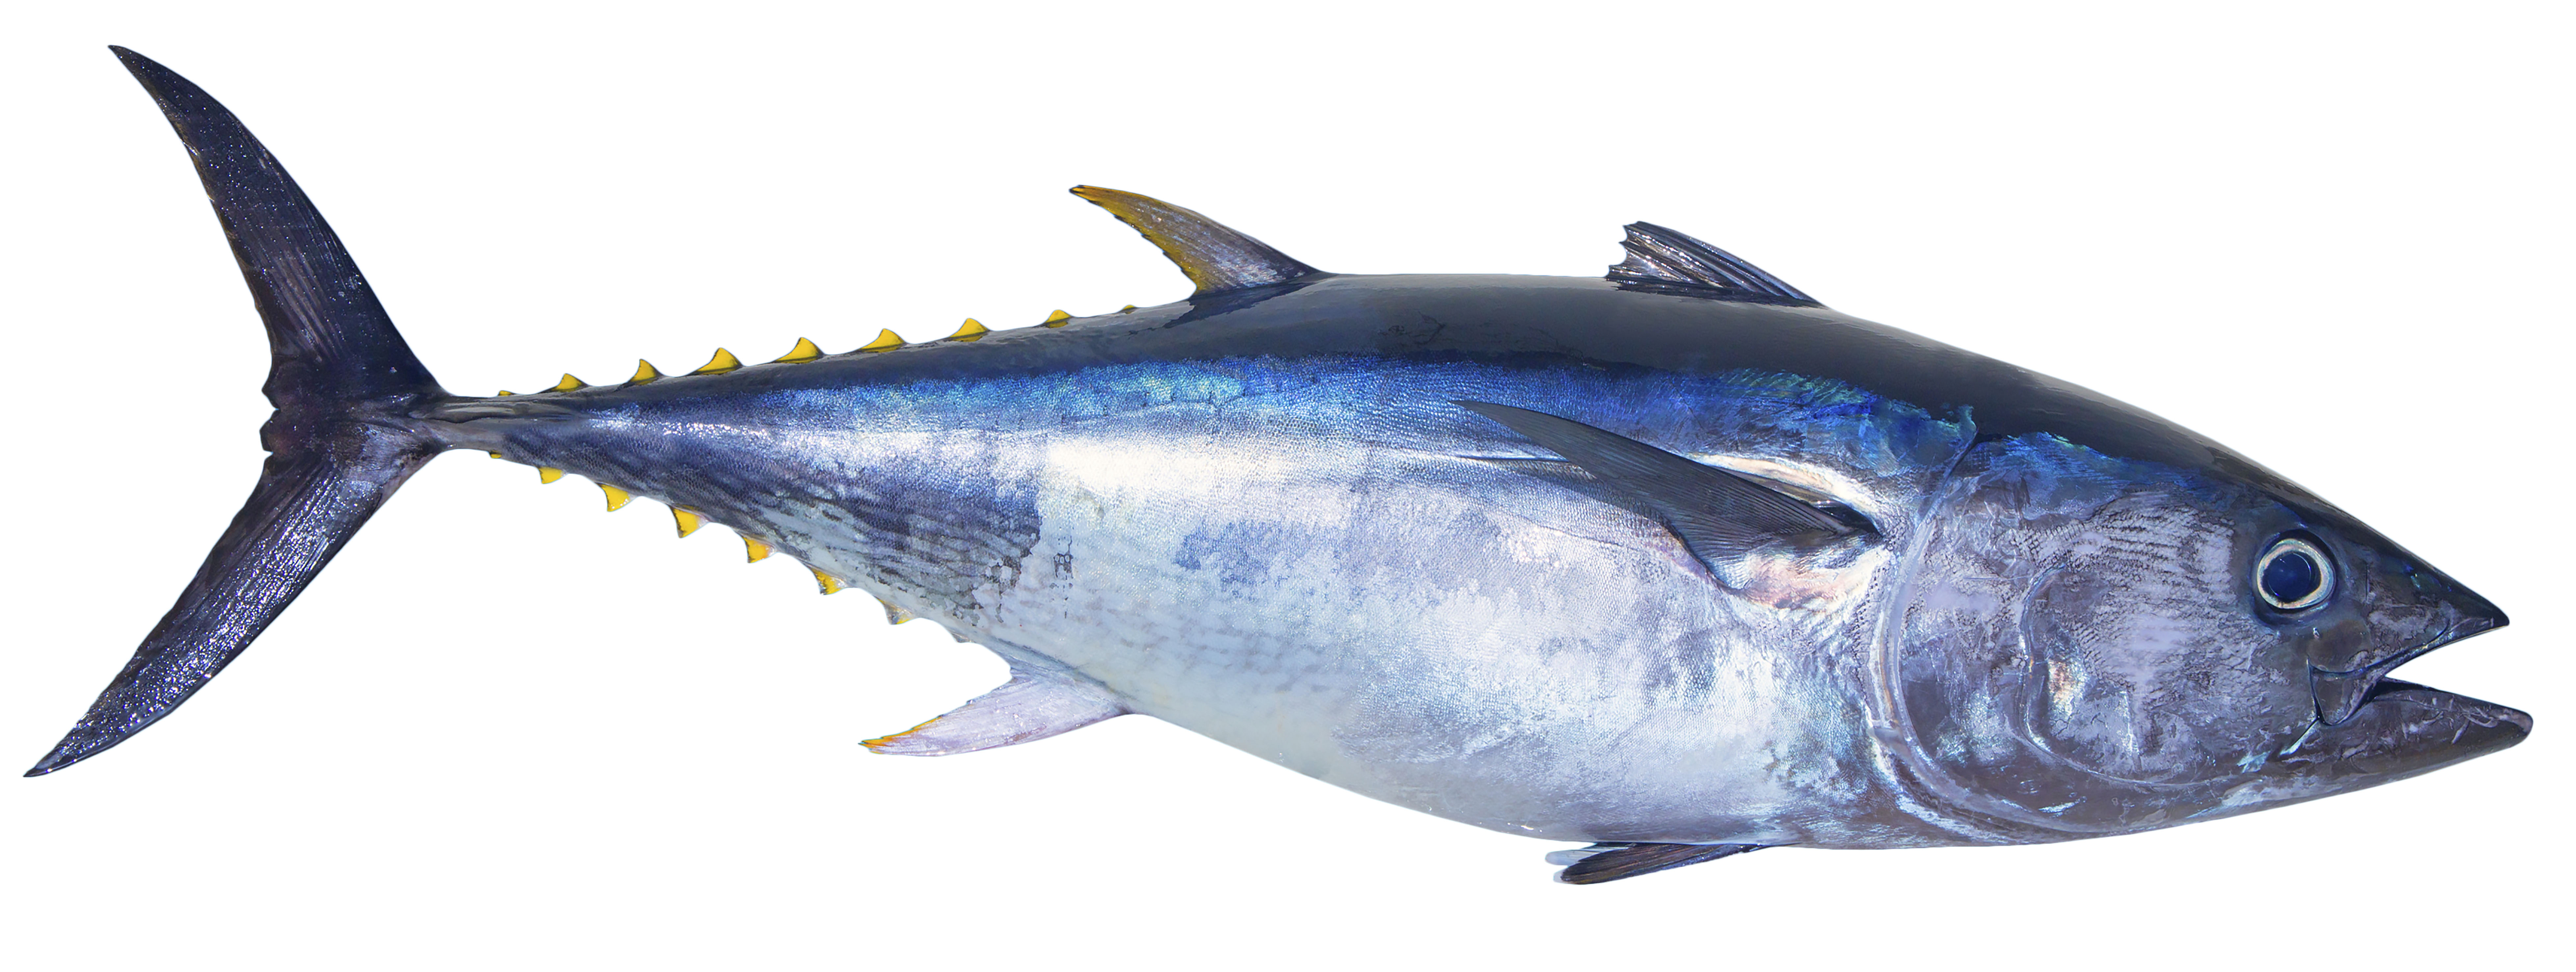 Can farmed tuna save the bluefin from extinction? | The ... - photo#13